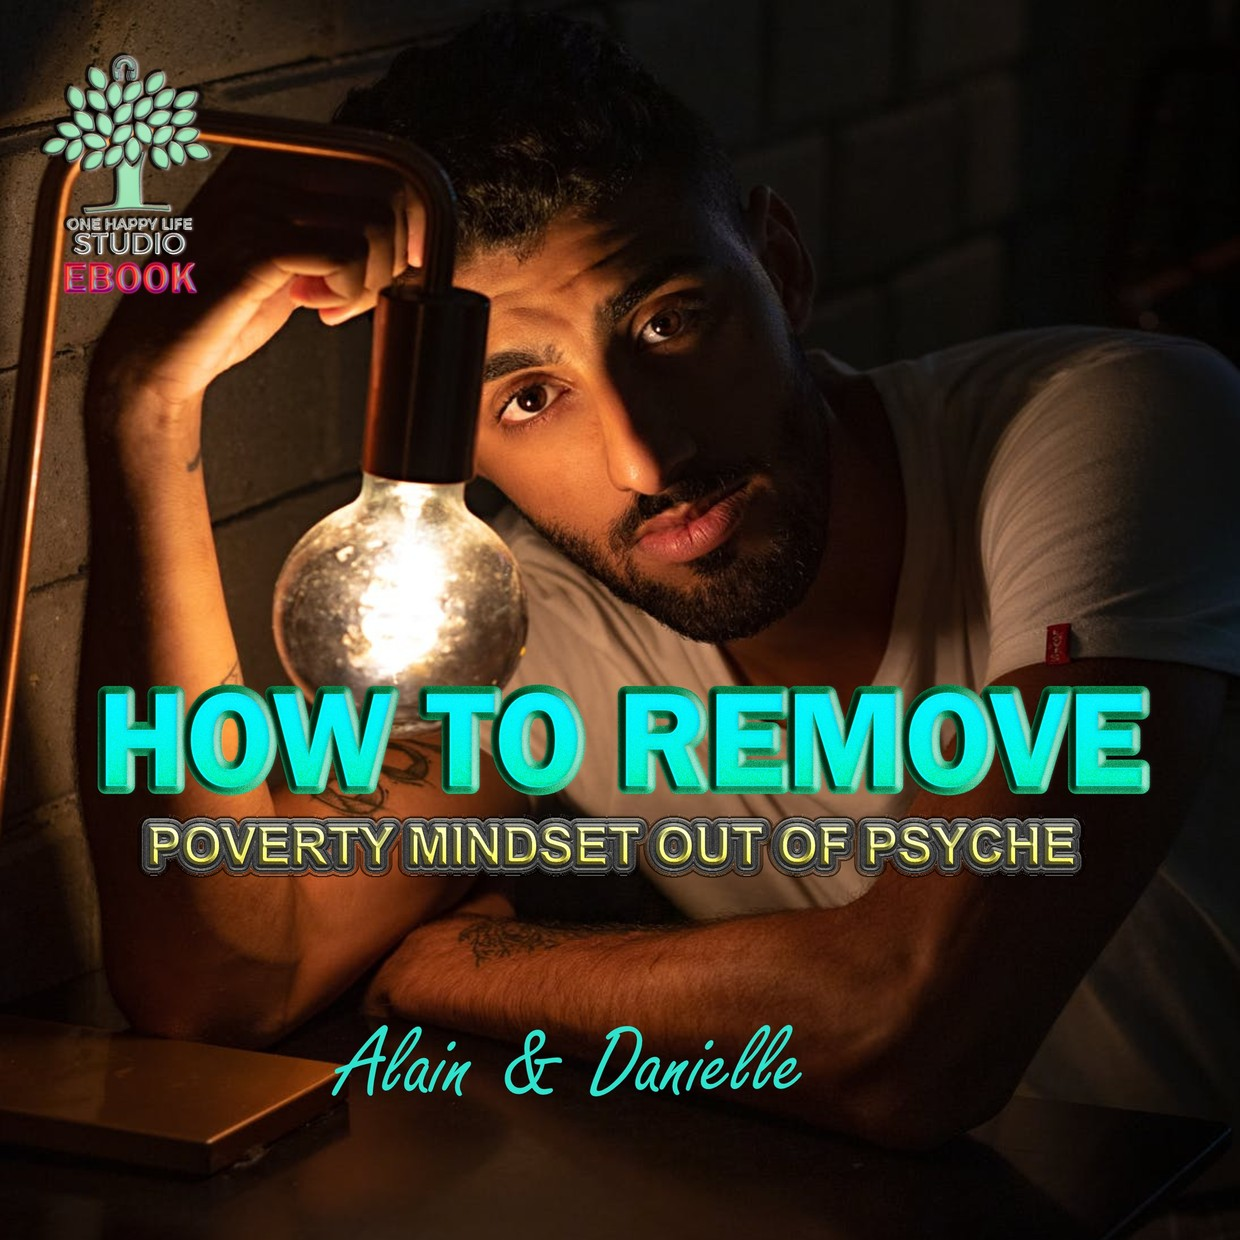 How To Remove Poverty Mindset Out Of Psyche - The Free eBook Preview